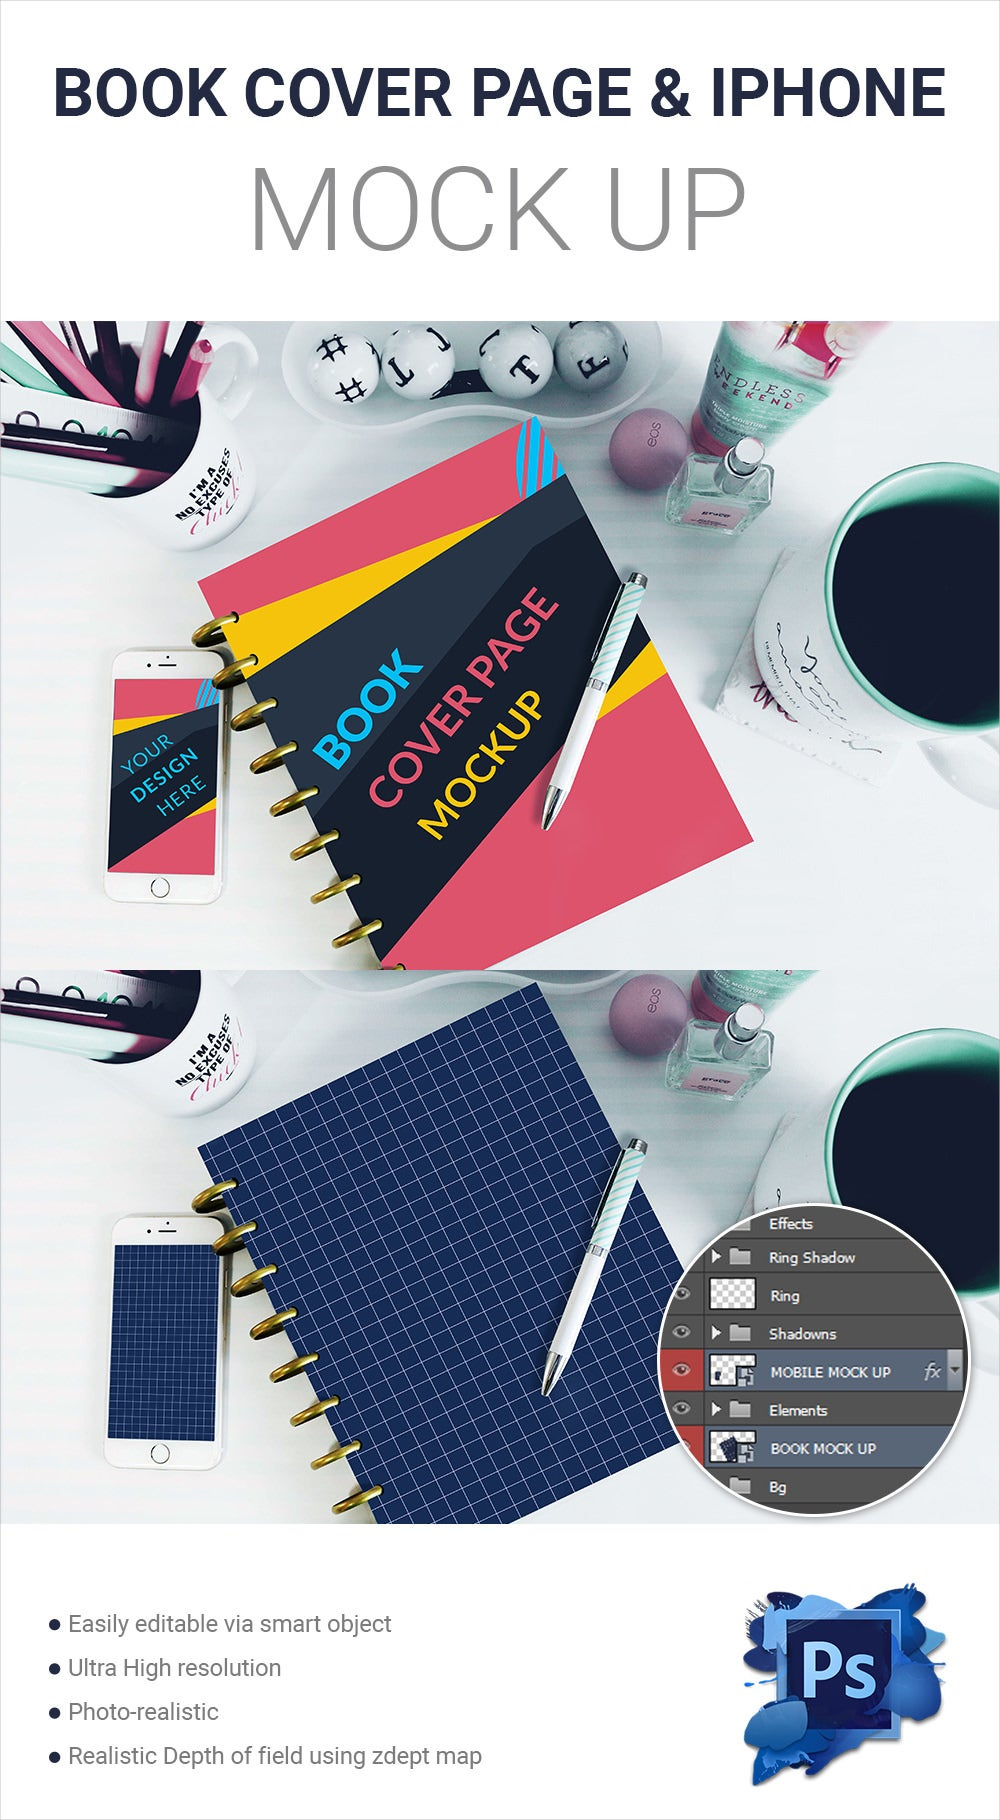 ebook cover designs premium templates book cover page iphone mockup